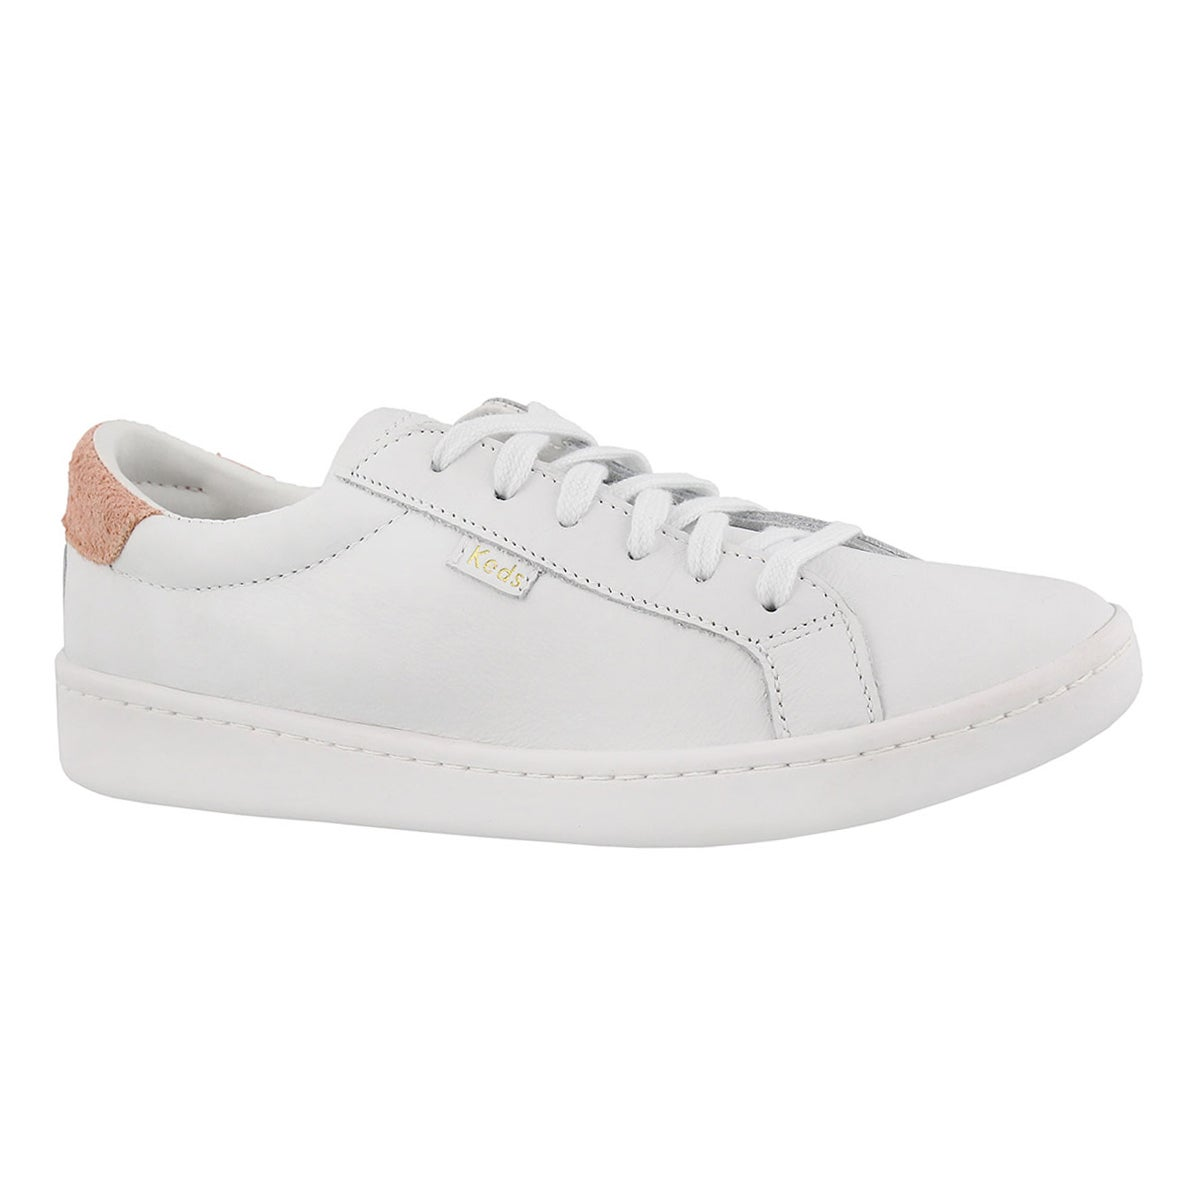 d9620a6f8a Women's ACE white/coral leather lace up sneakers